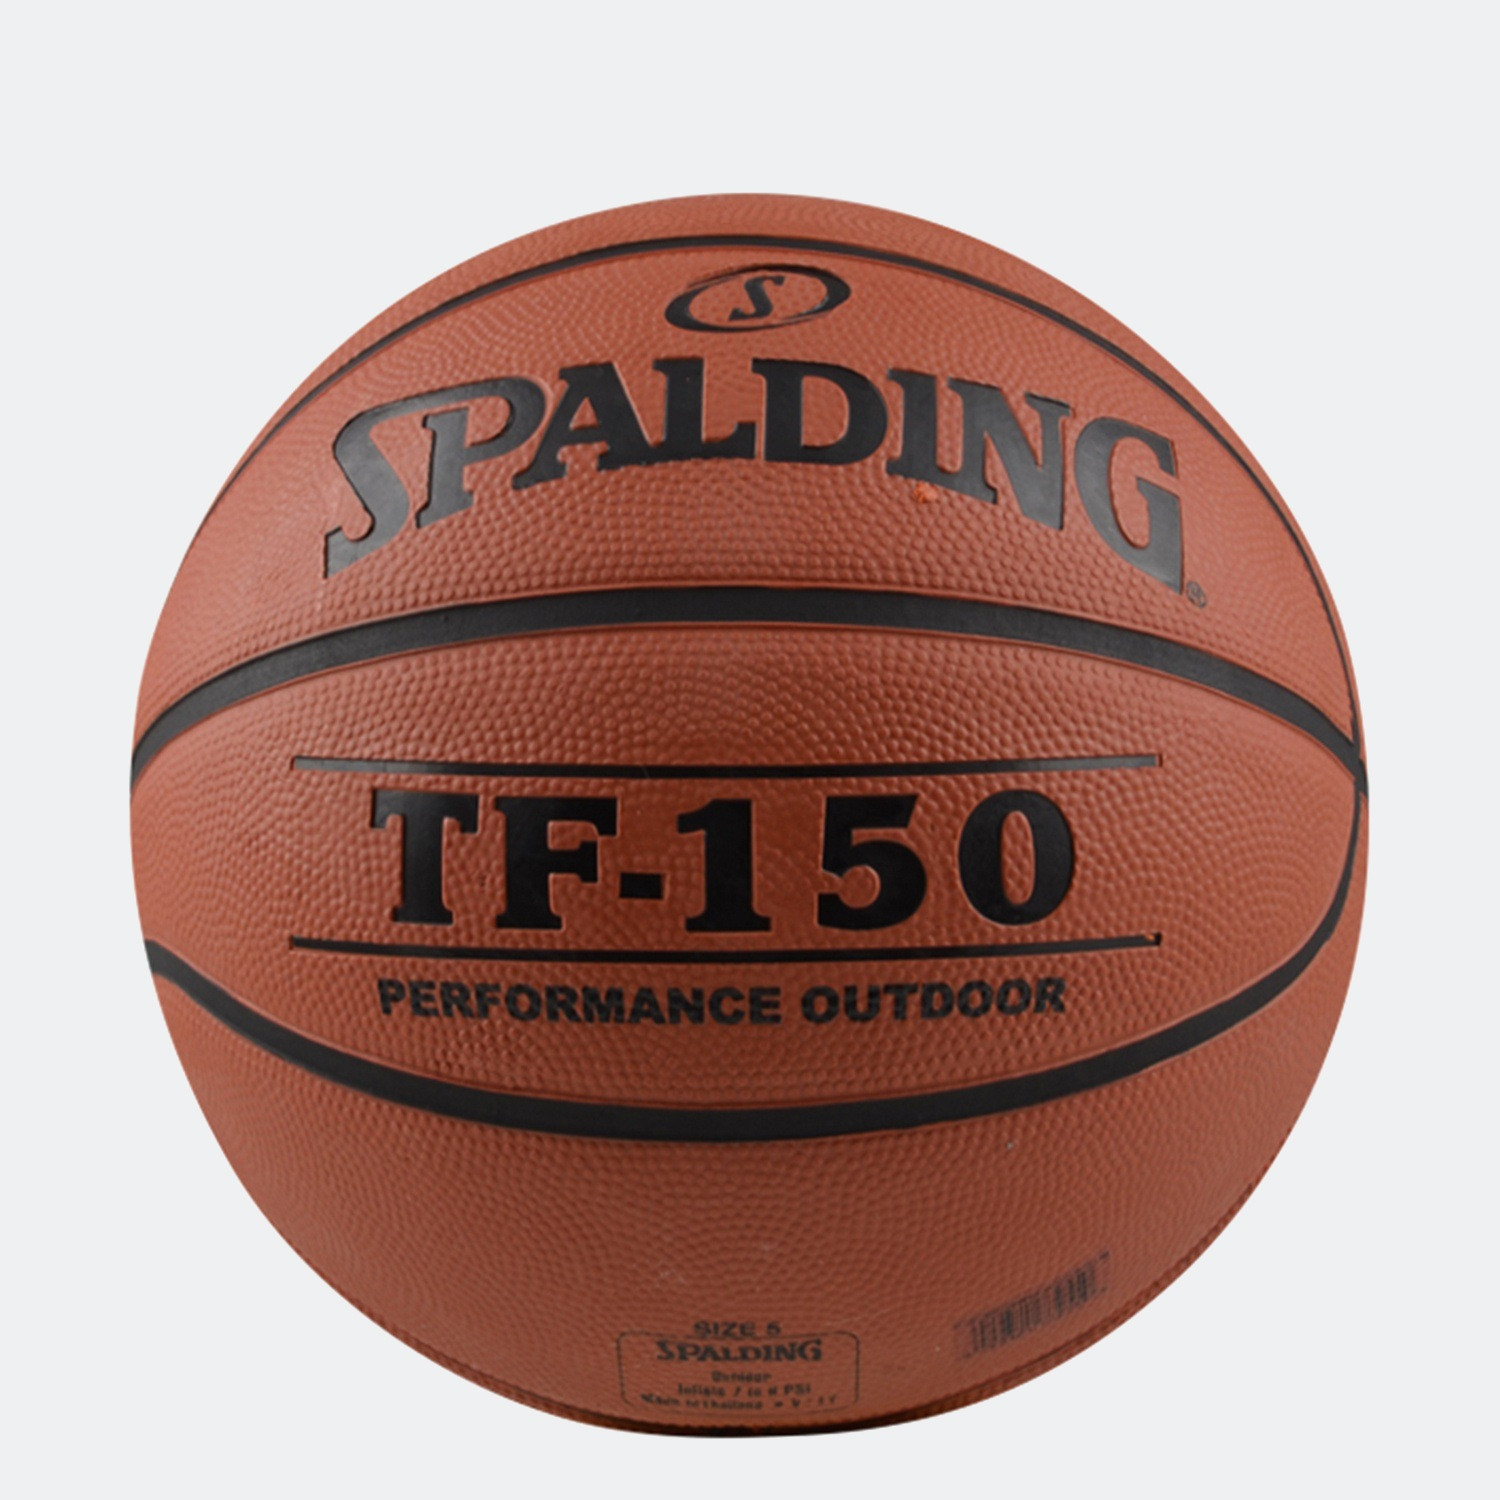 Spalding Tf-150 Performance Rubber Basketball (3024500066_005)